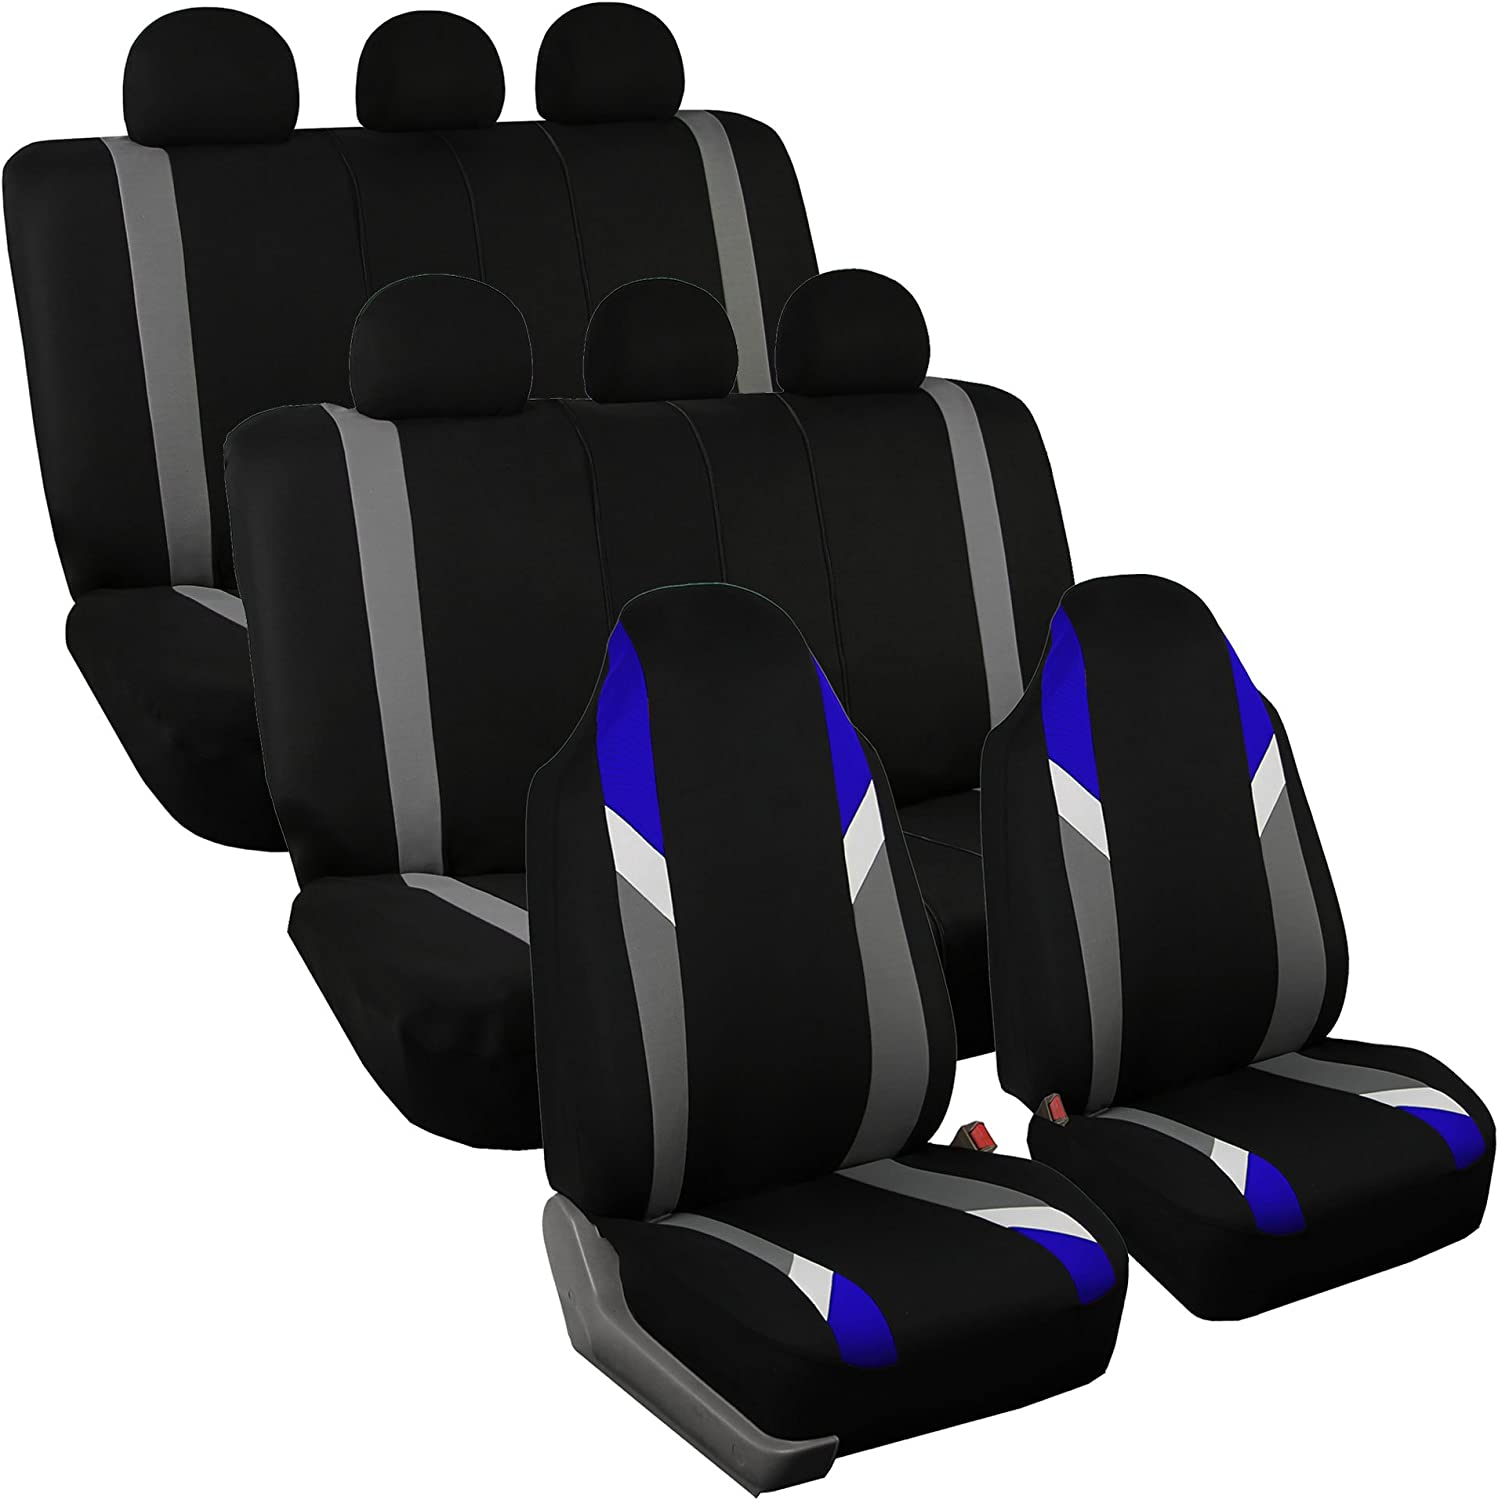 FH Group FB133128 Three Row- Premium Modernistic Seat Covers Blue/Black- Fit Most Car, Truck, SUV, or Van